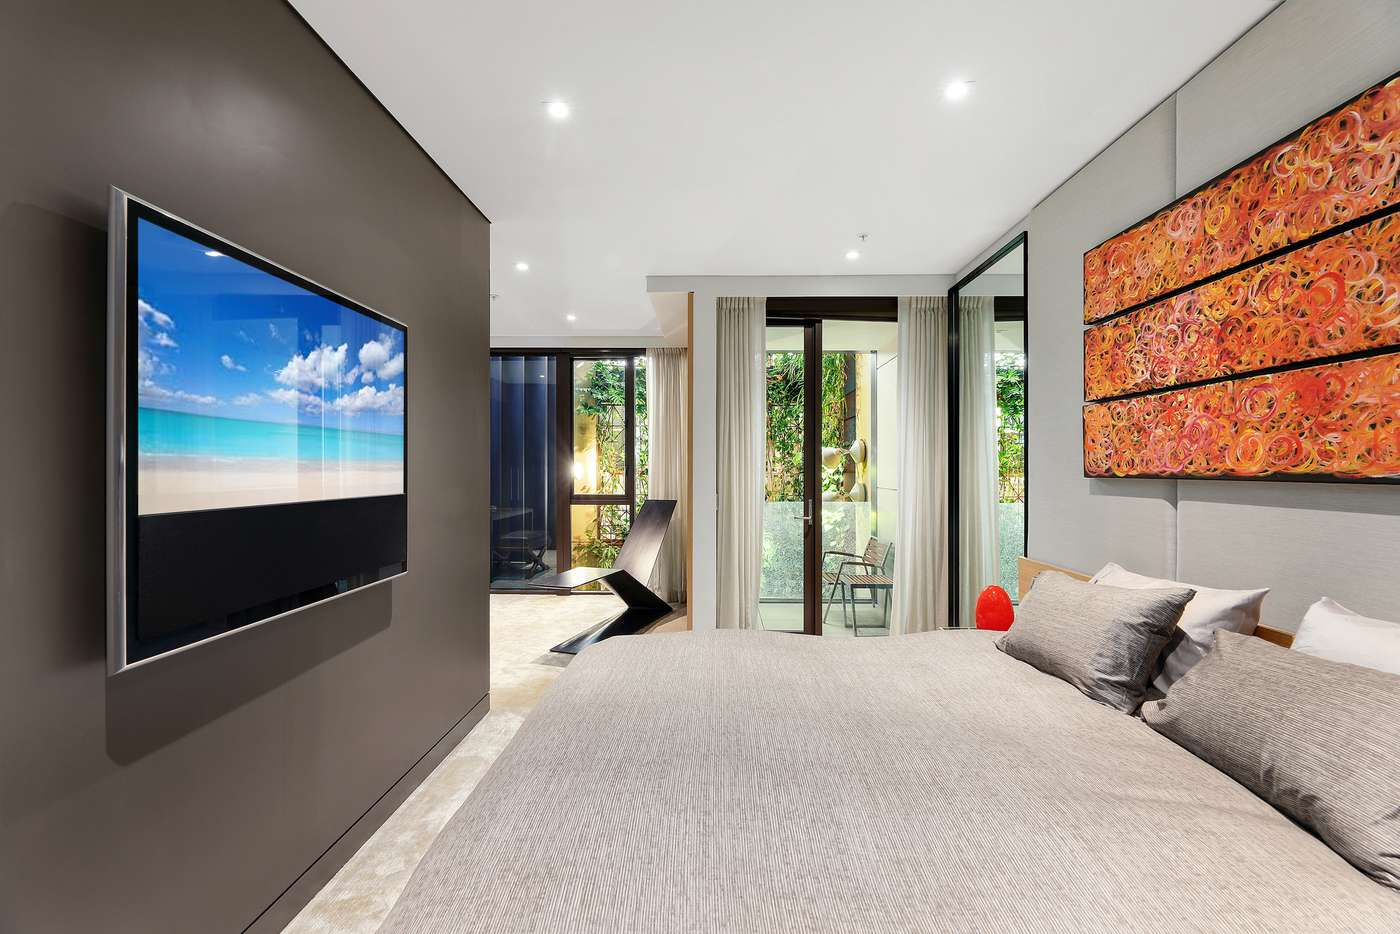 Fifth view of Homely apartment listing, 401/141-143 Elizabeth Street, Sydney NSW 2000